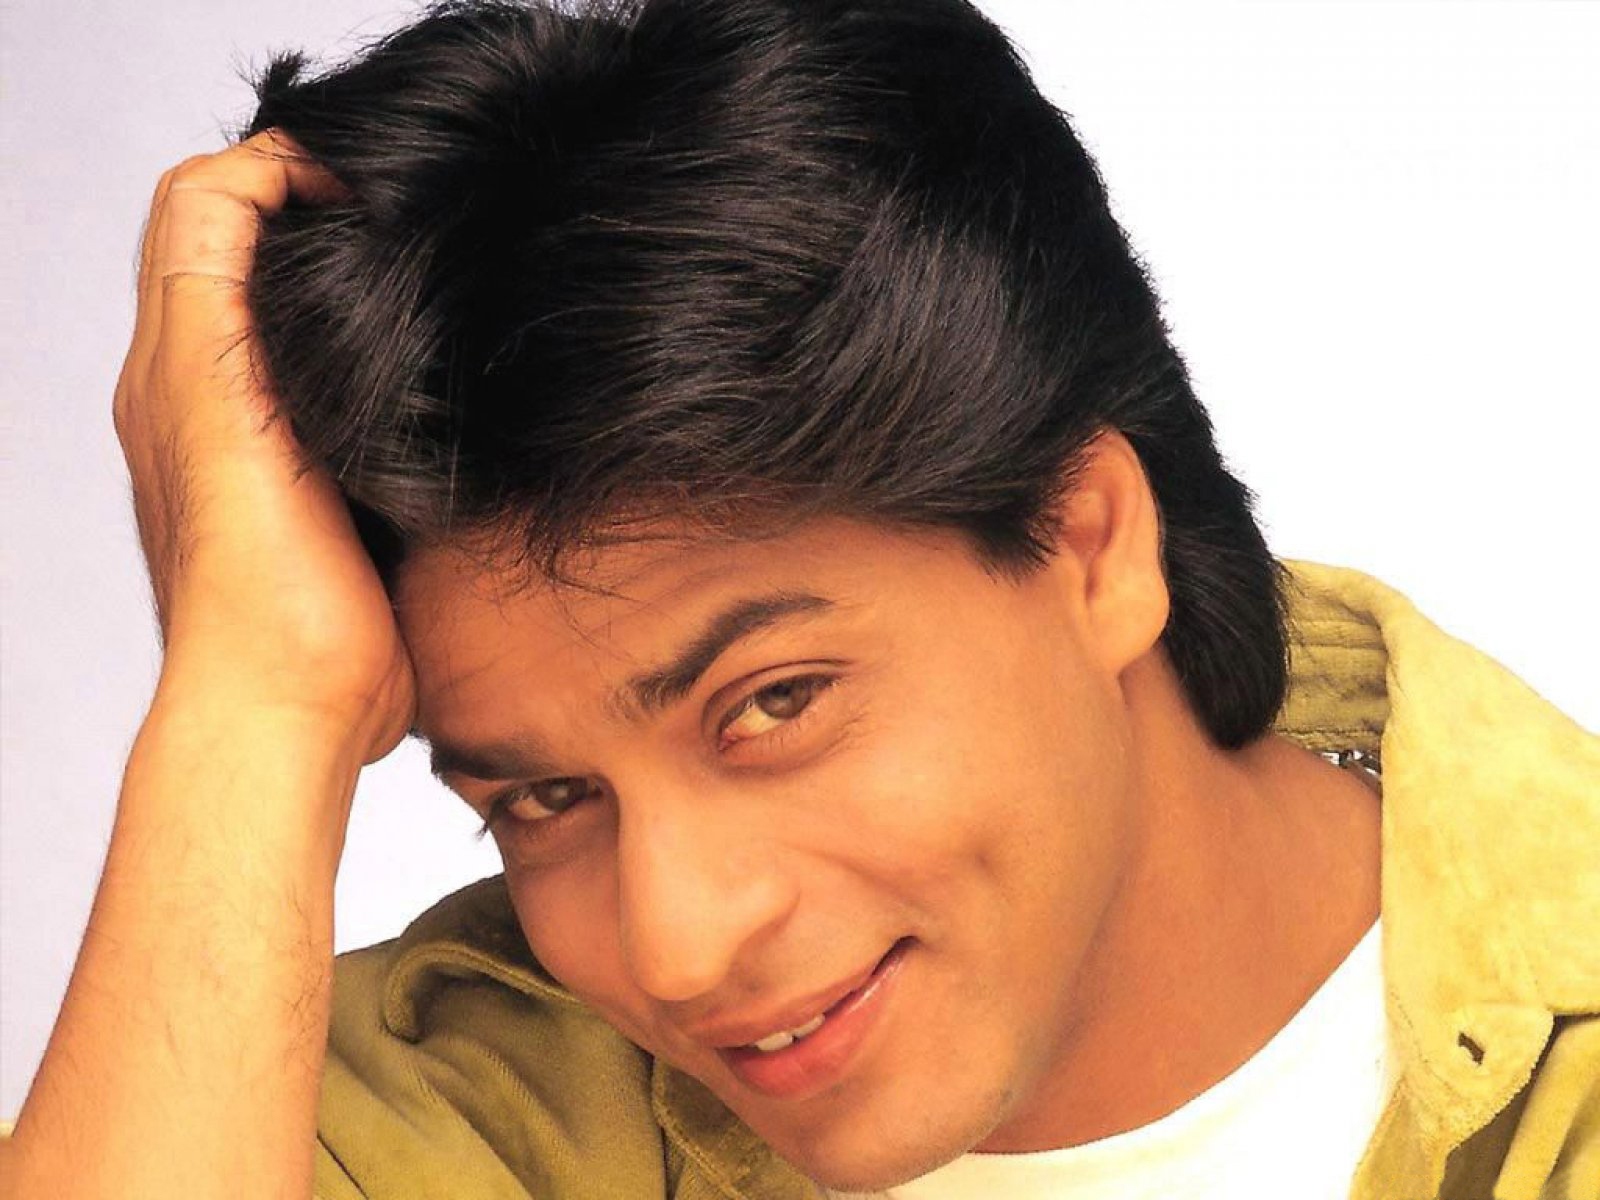 shahrukh khan - digital hd photos